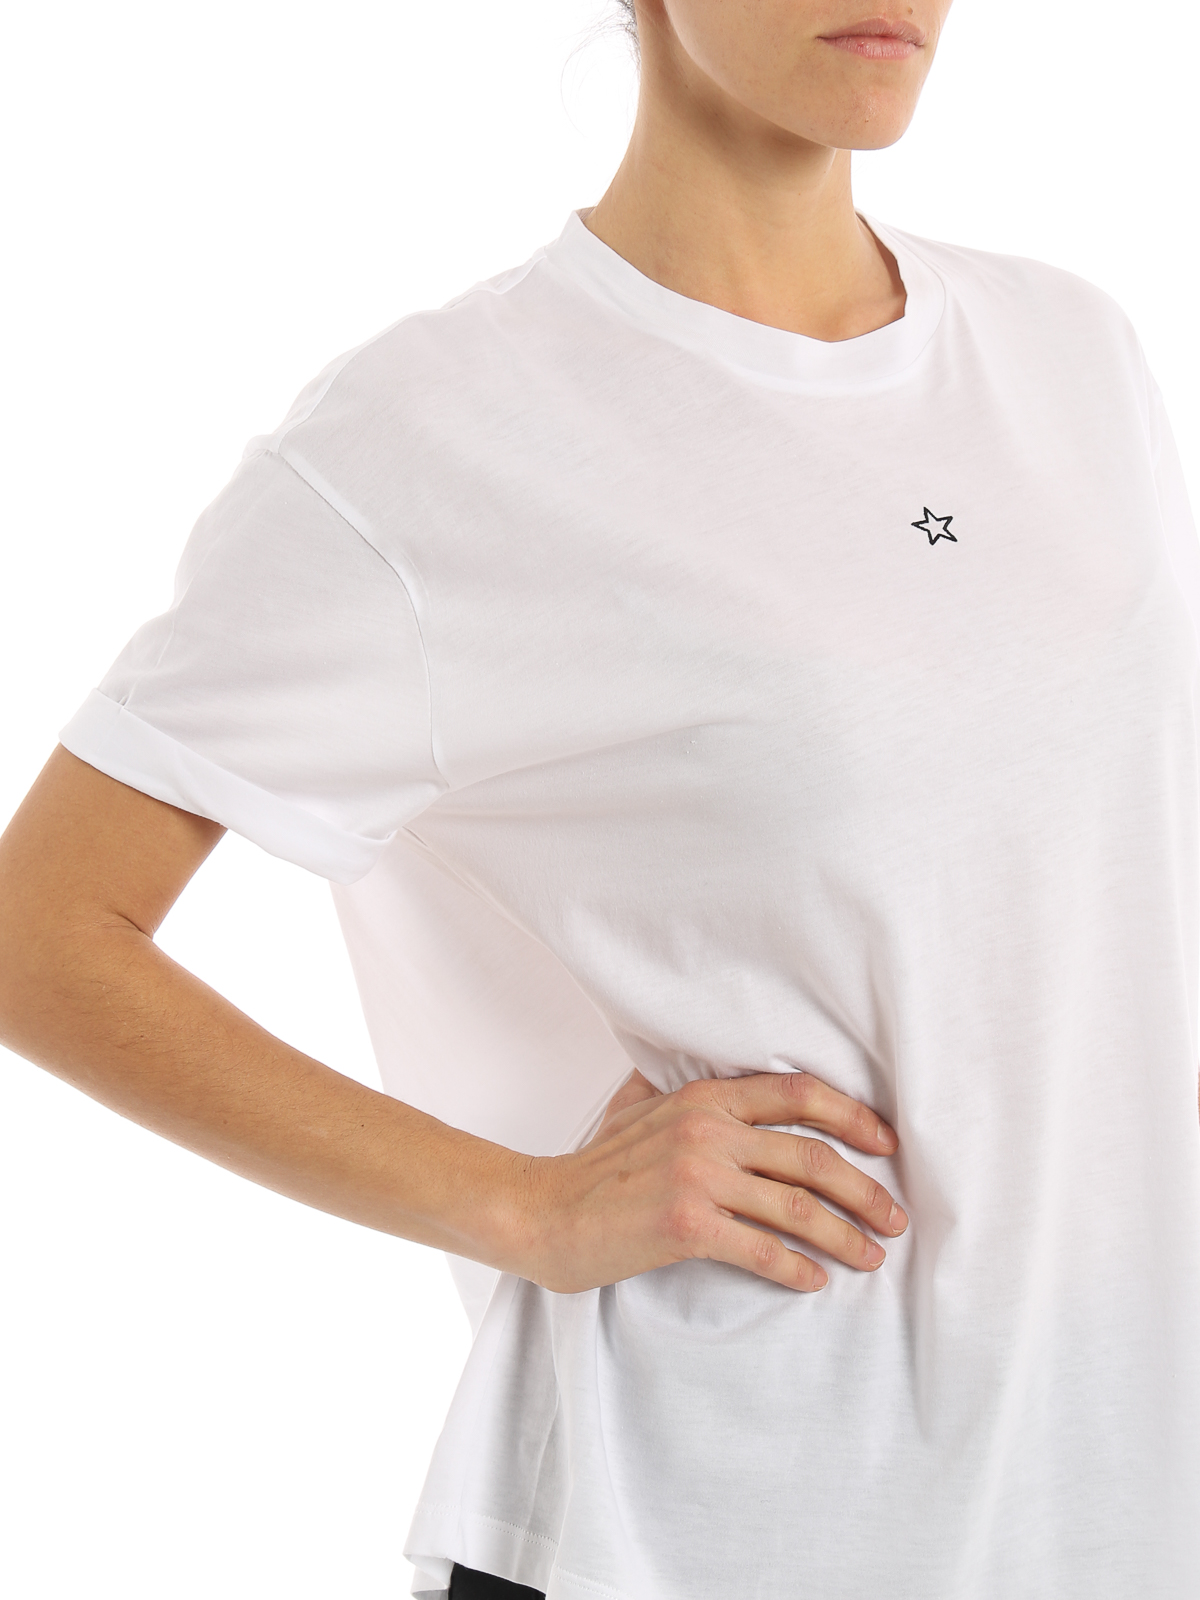 Micro star embroidery t shirt by stella mccartney